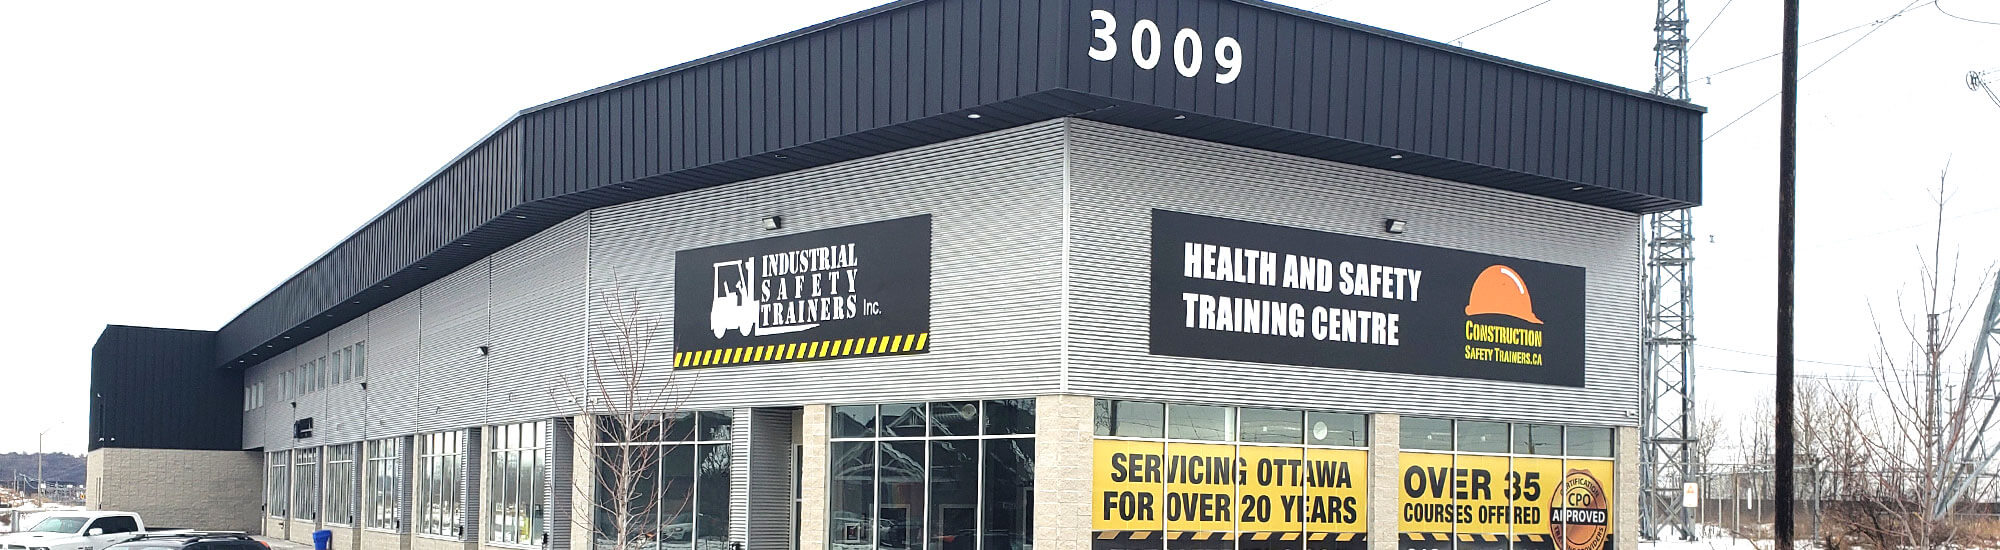 Ottawa health and safety training centre